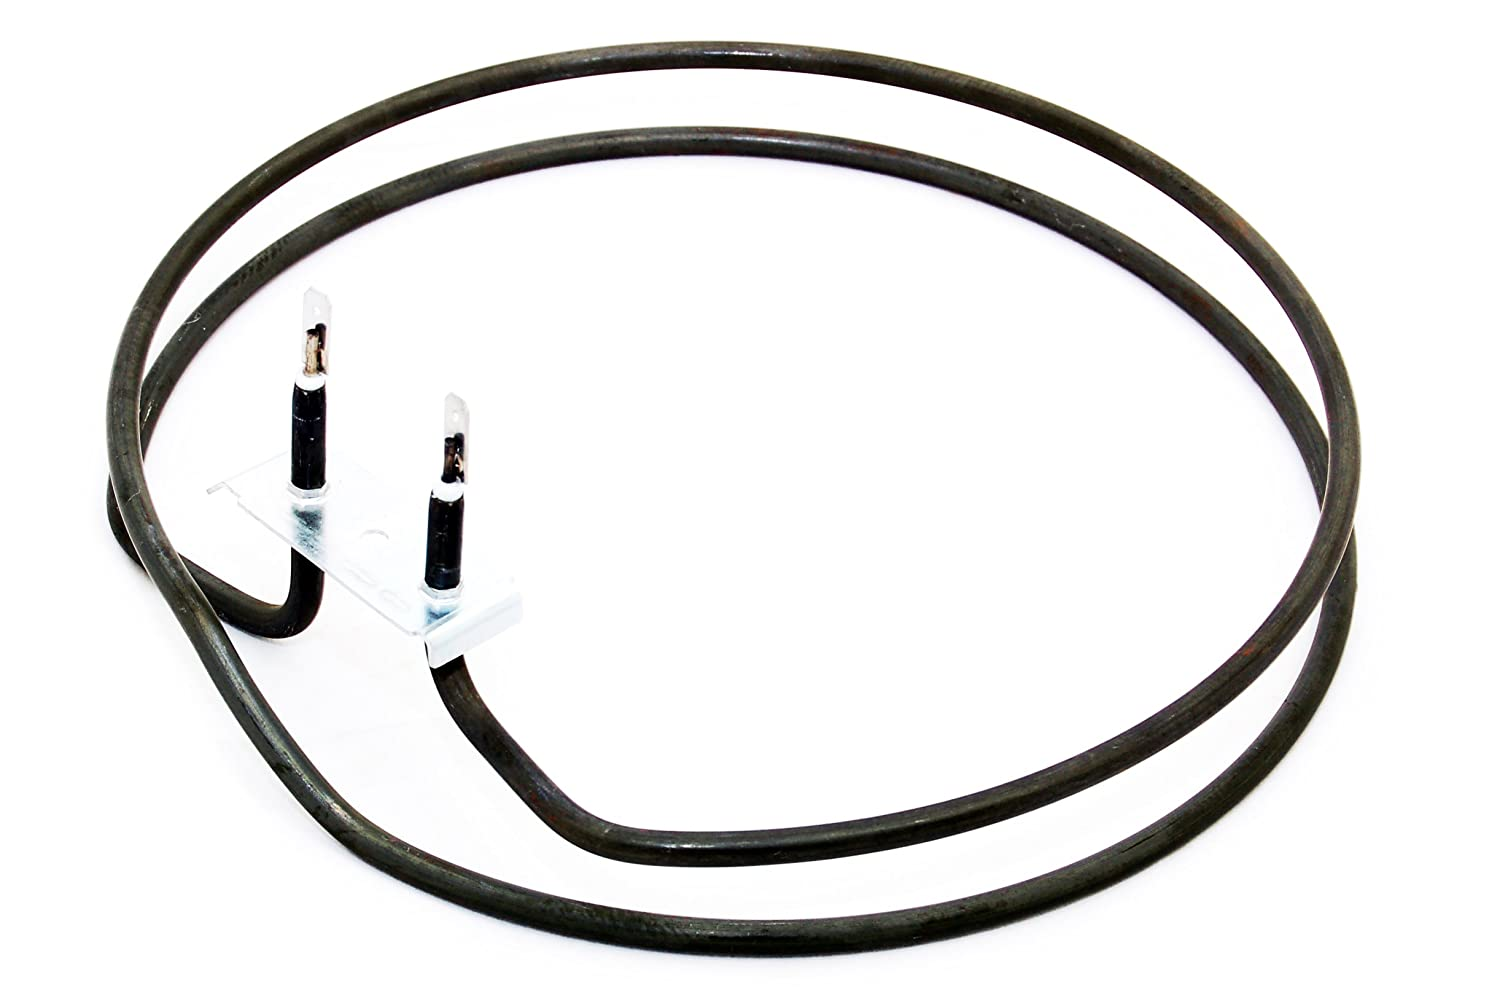 Hotpoint Oven Heating Element Replacement Hotpoint Creda Fan Oven Element 25kw Amazoncouk Large Appliances